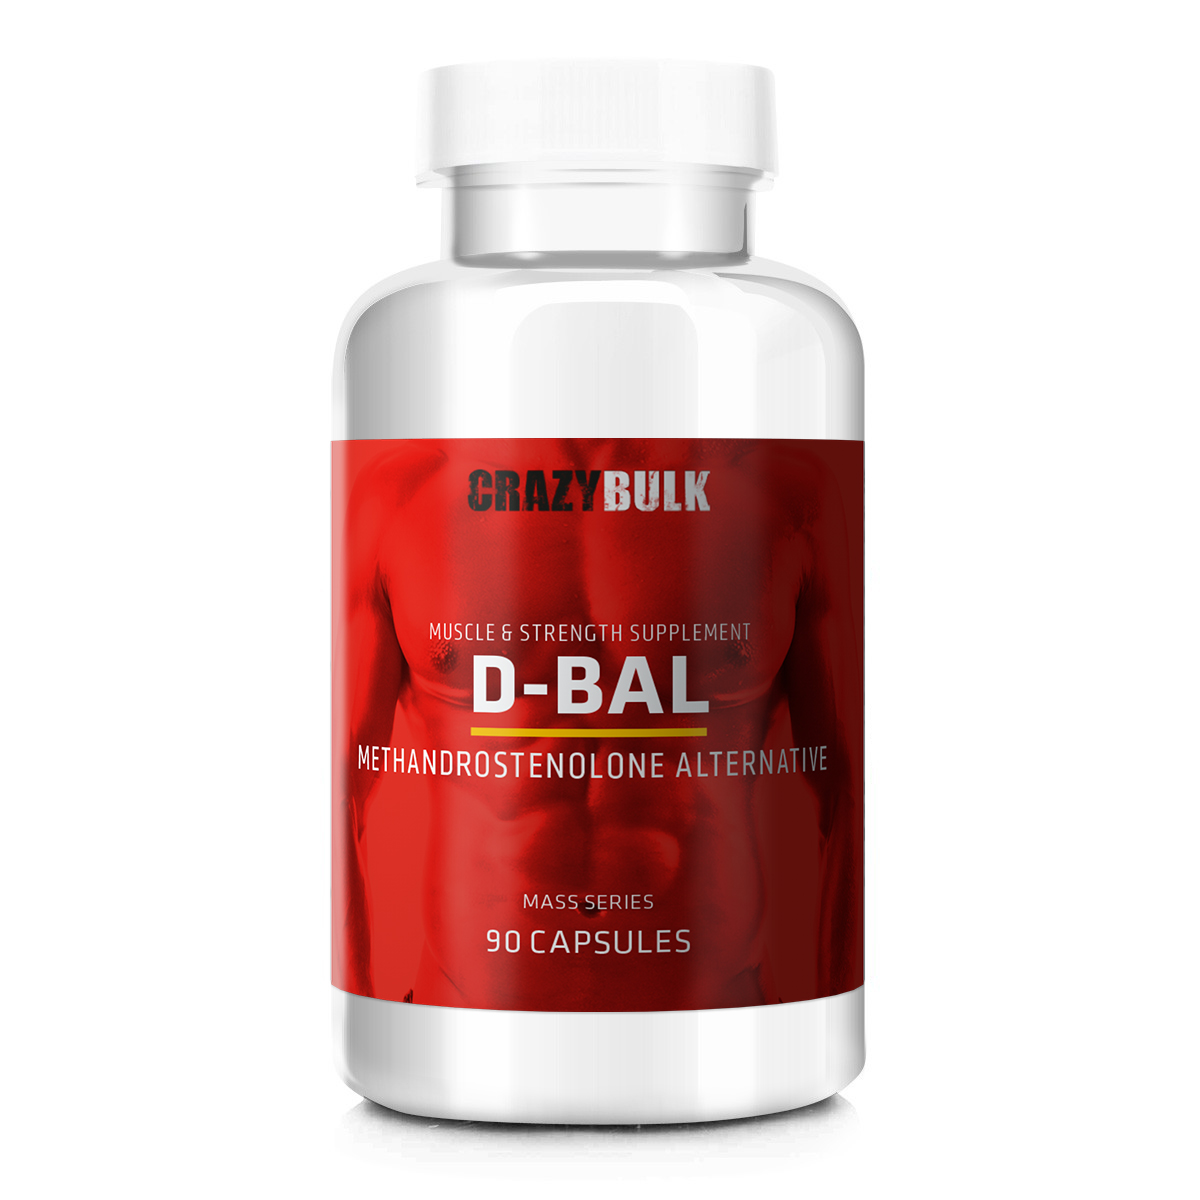 Dianabol review: D-bol's Anabolic benefits, Side effects